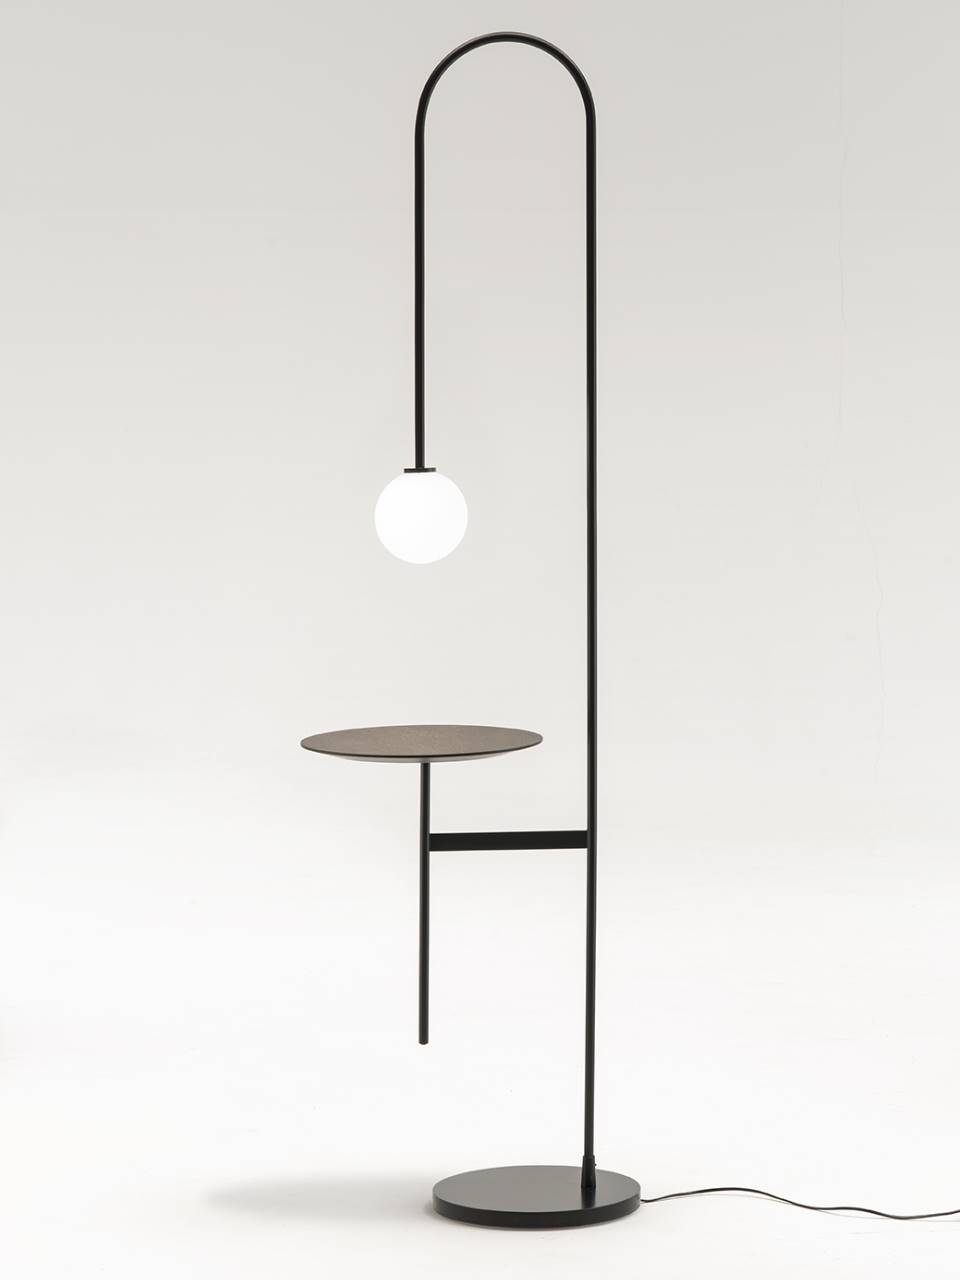 Light with a table